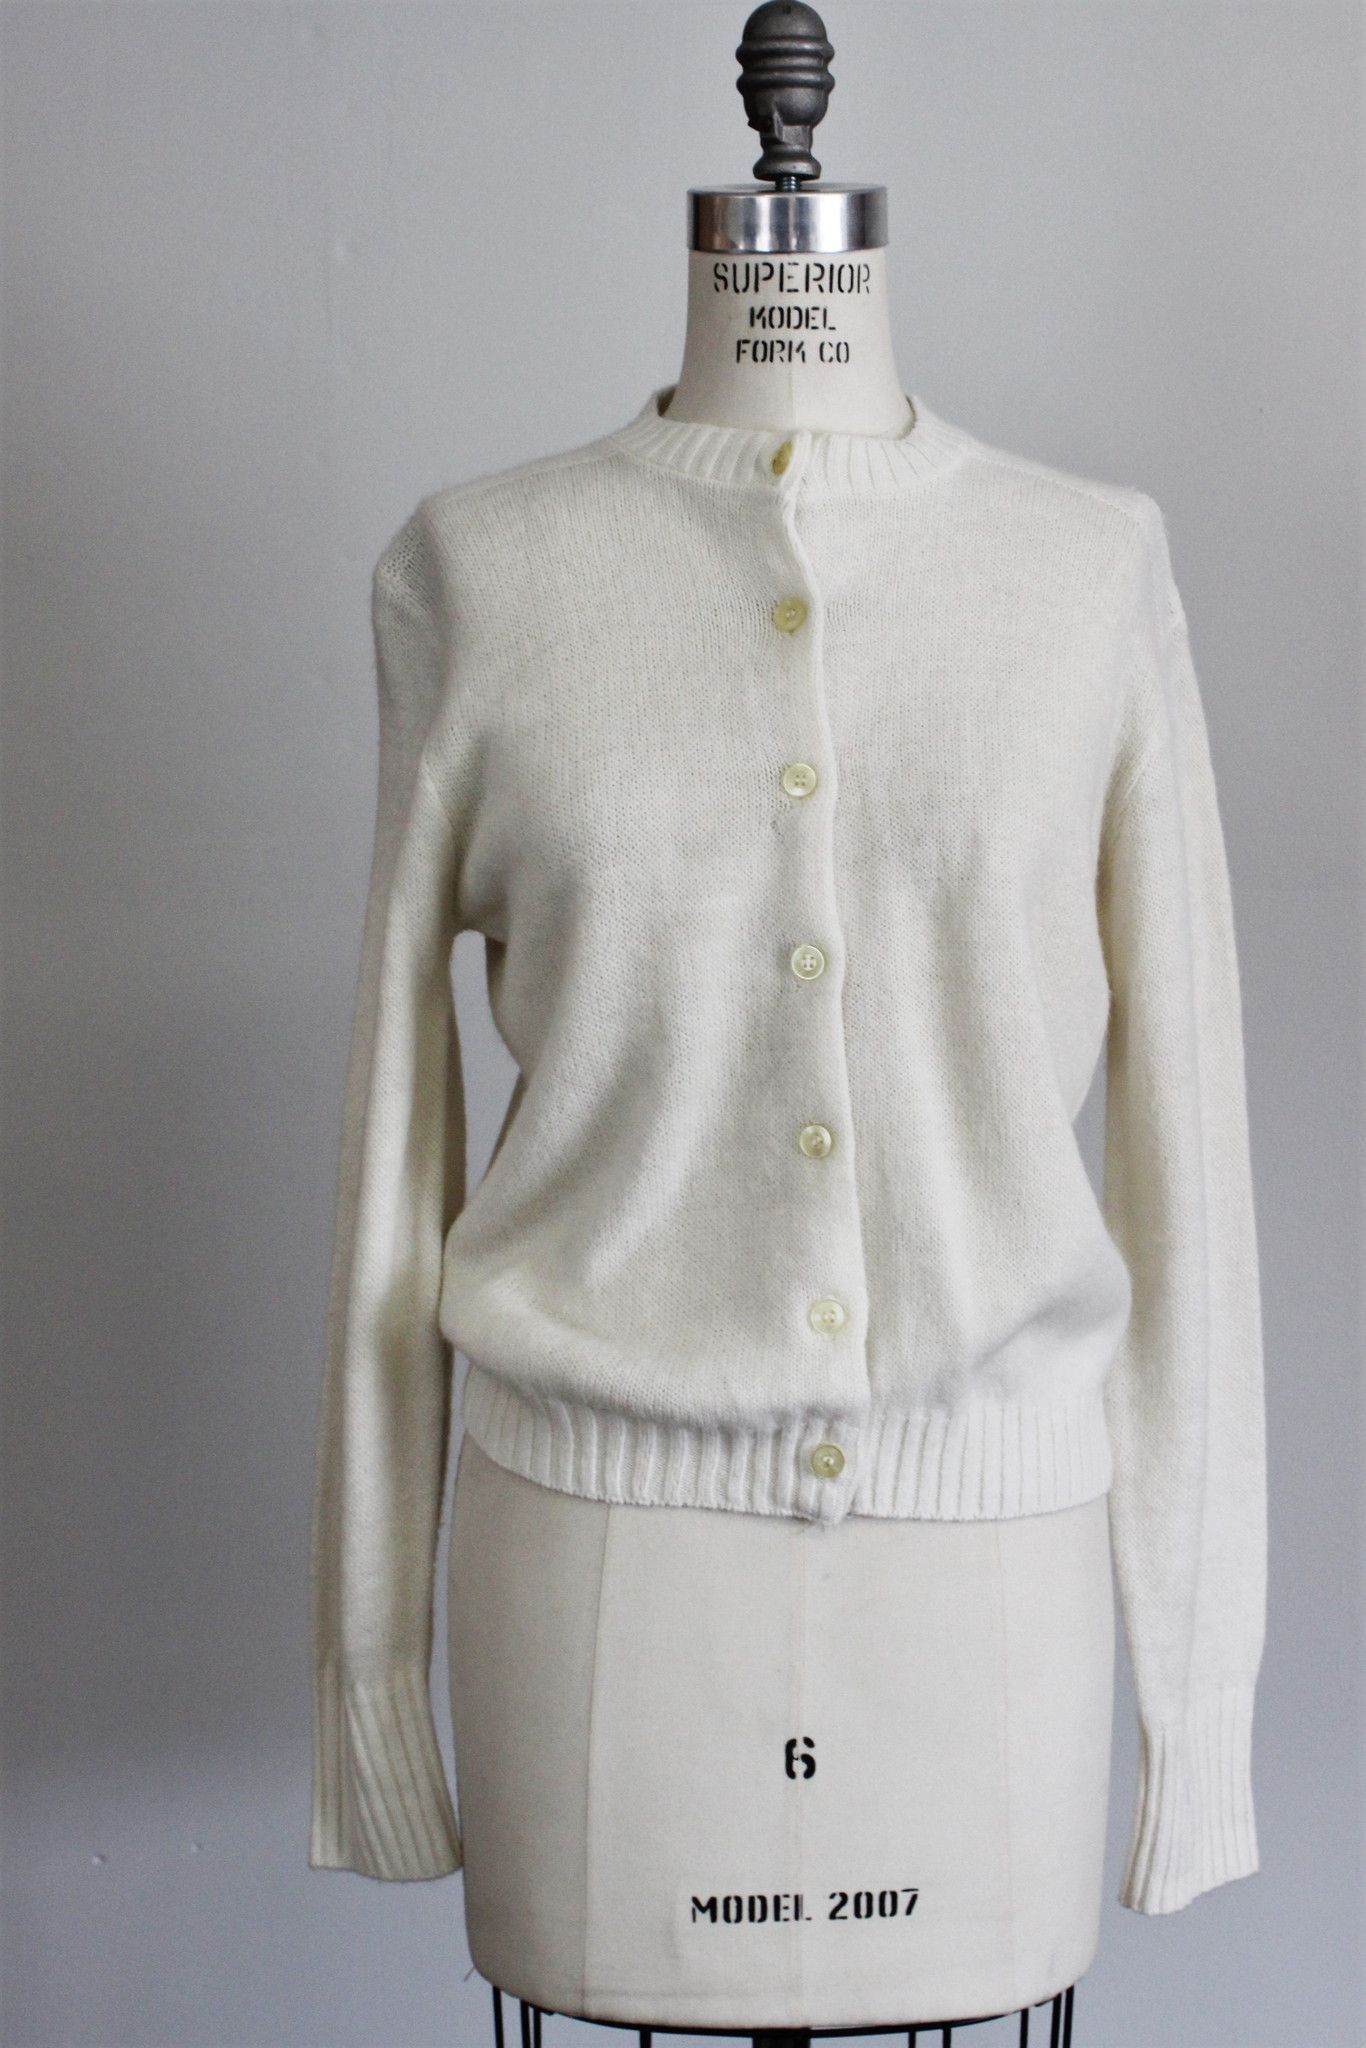 Vintage 1960s White Knit Cardigan Sweater / 60s Joyce Lane | Products